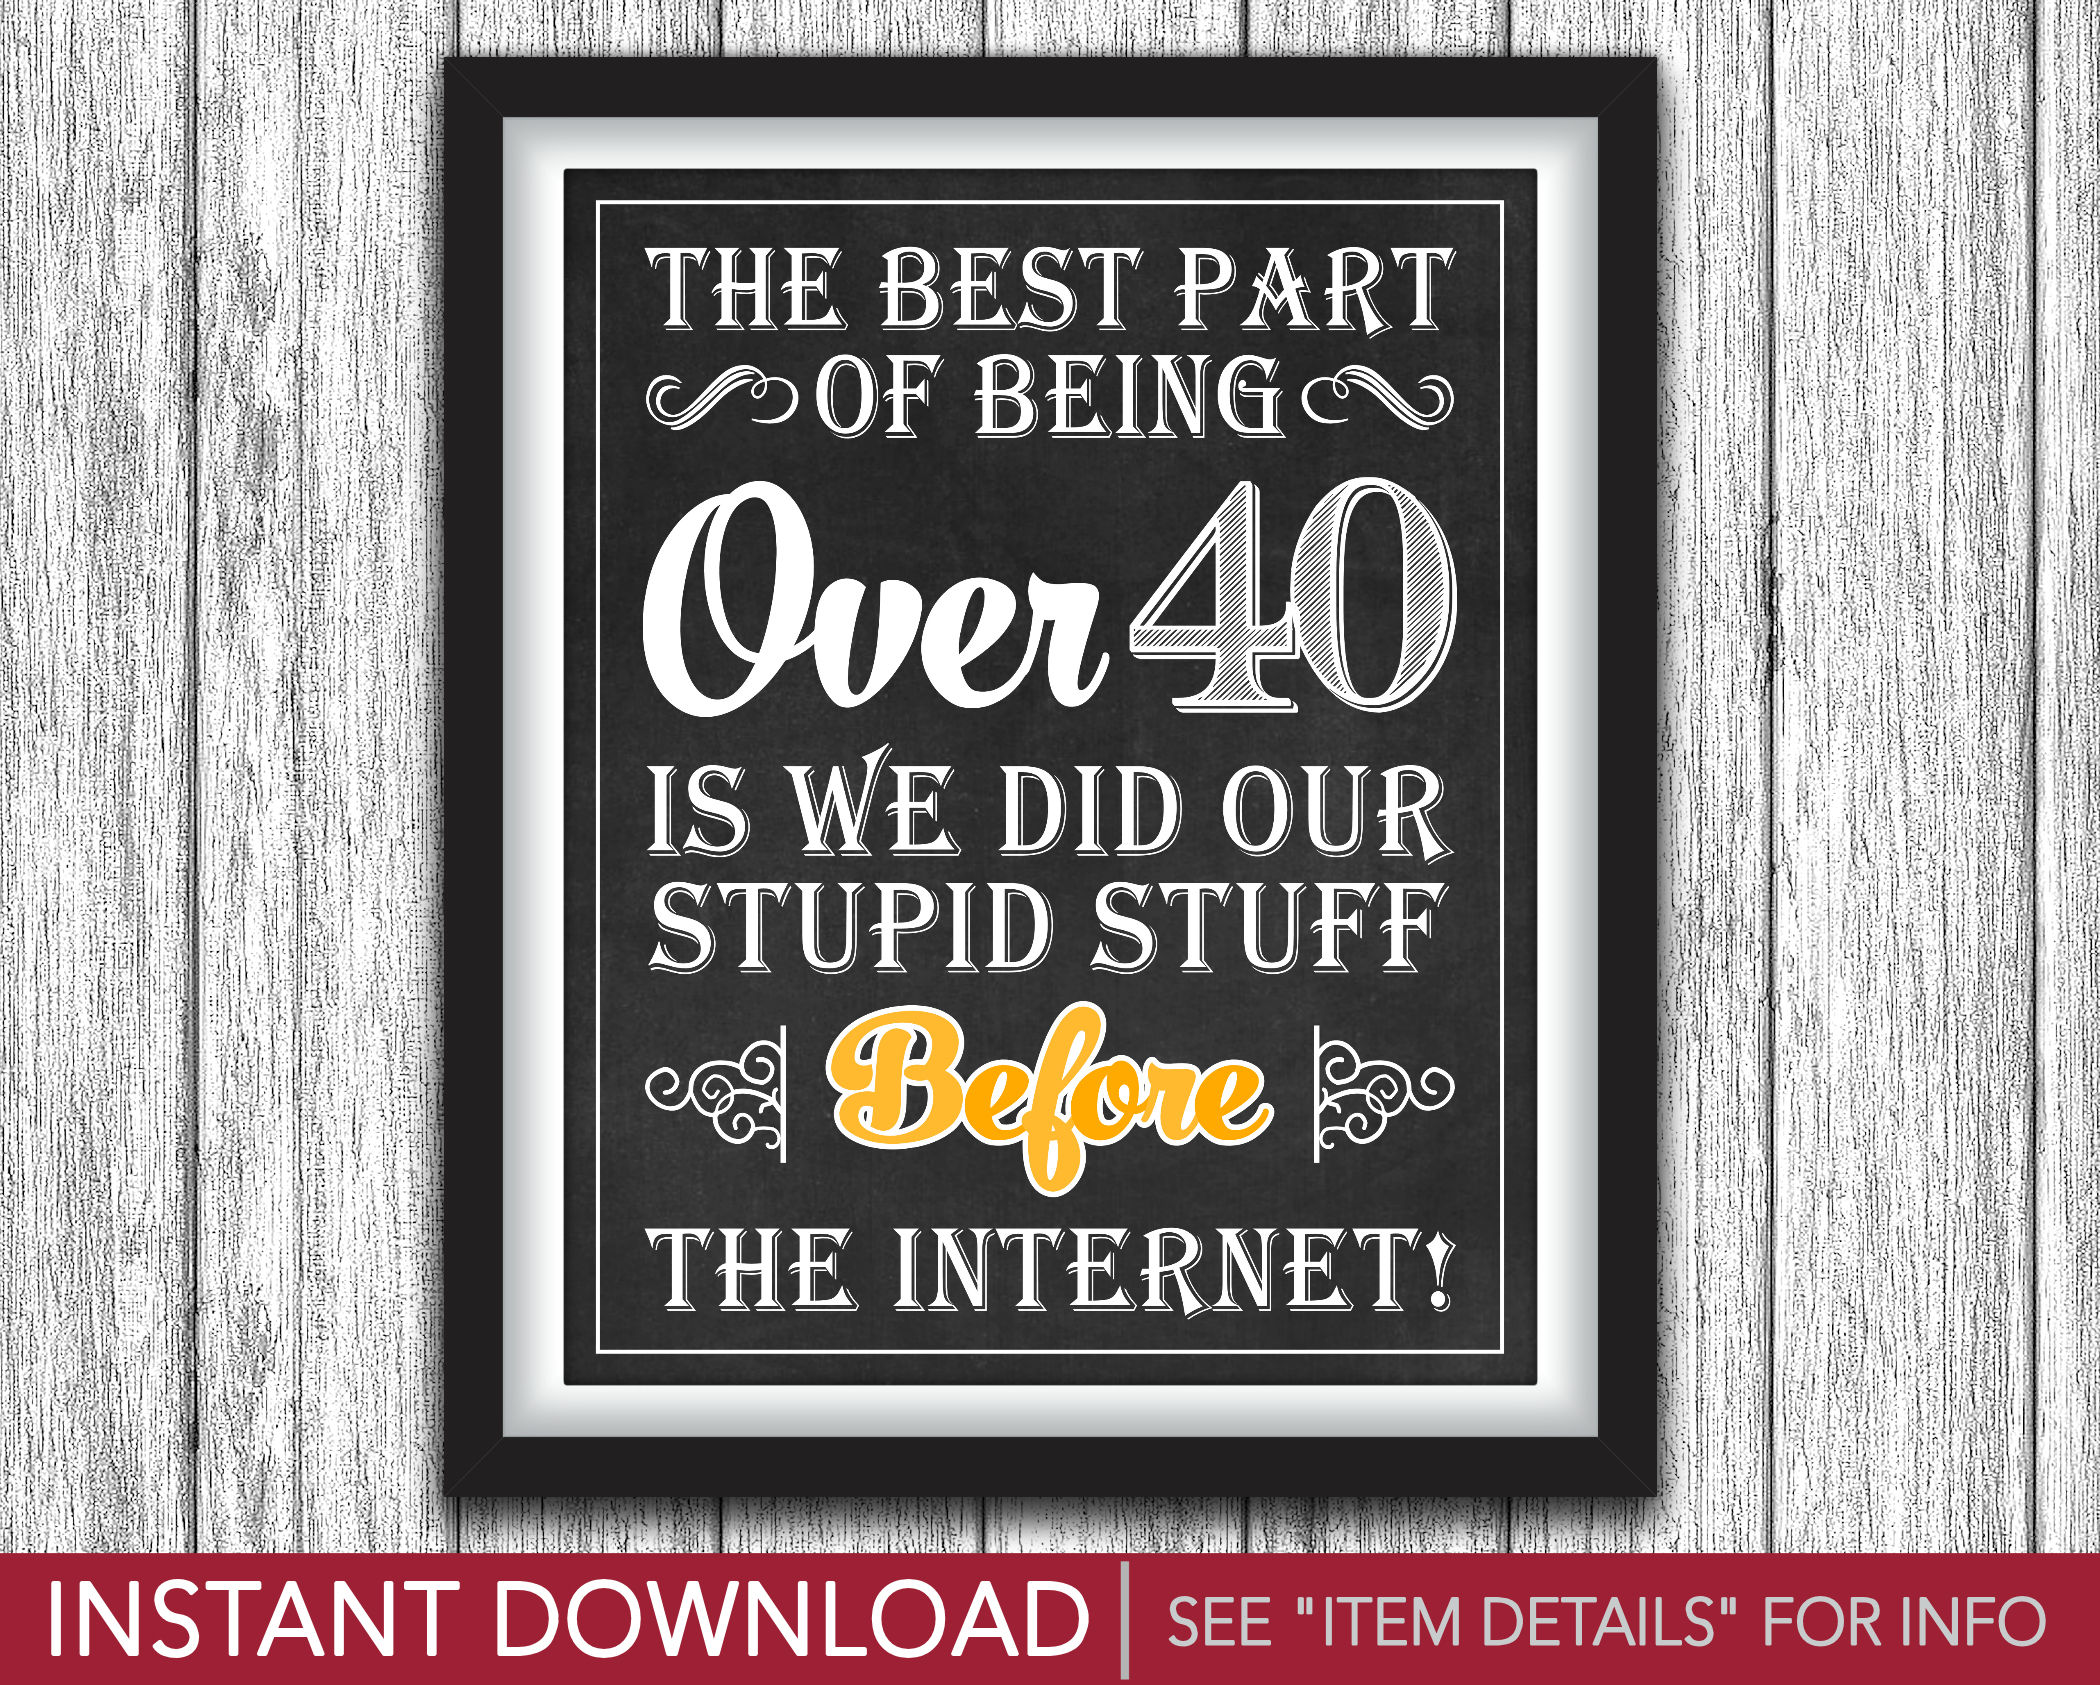 picture relating to 40th Birthday Signs Printable known as 40th Birthday Signal The Ideal Portion of Getting About 40 Cheers and Beers in direction of 40 Yrs Concept Printable 8\